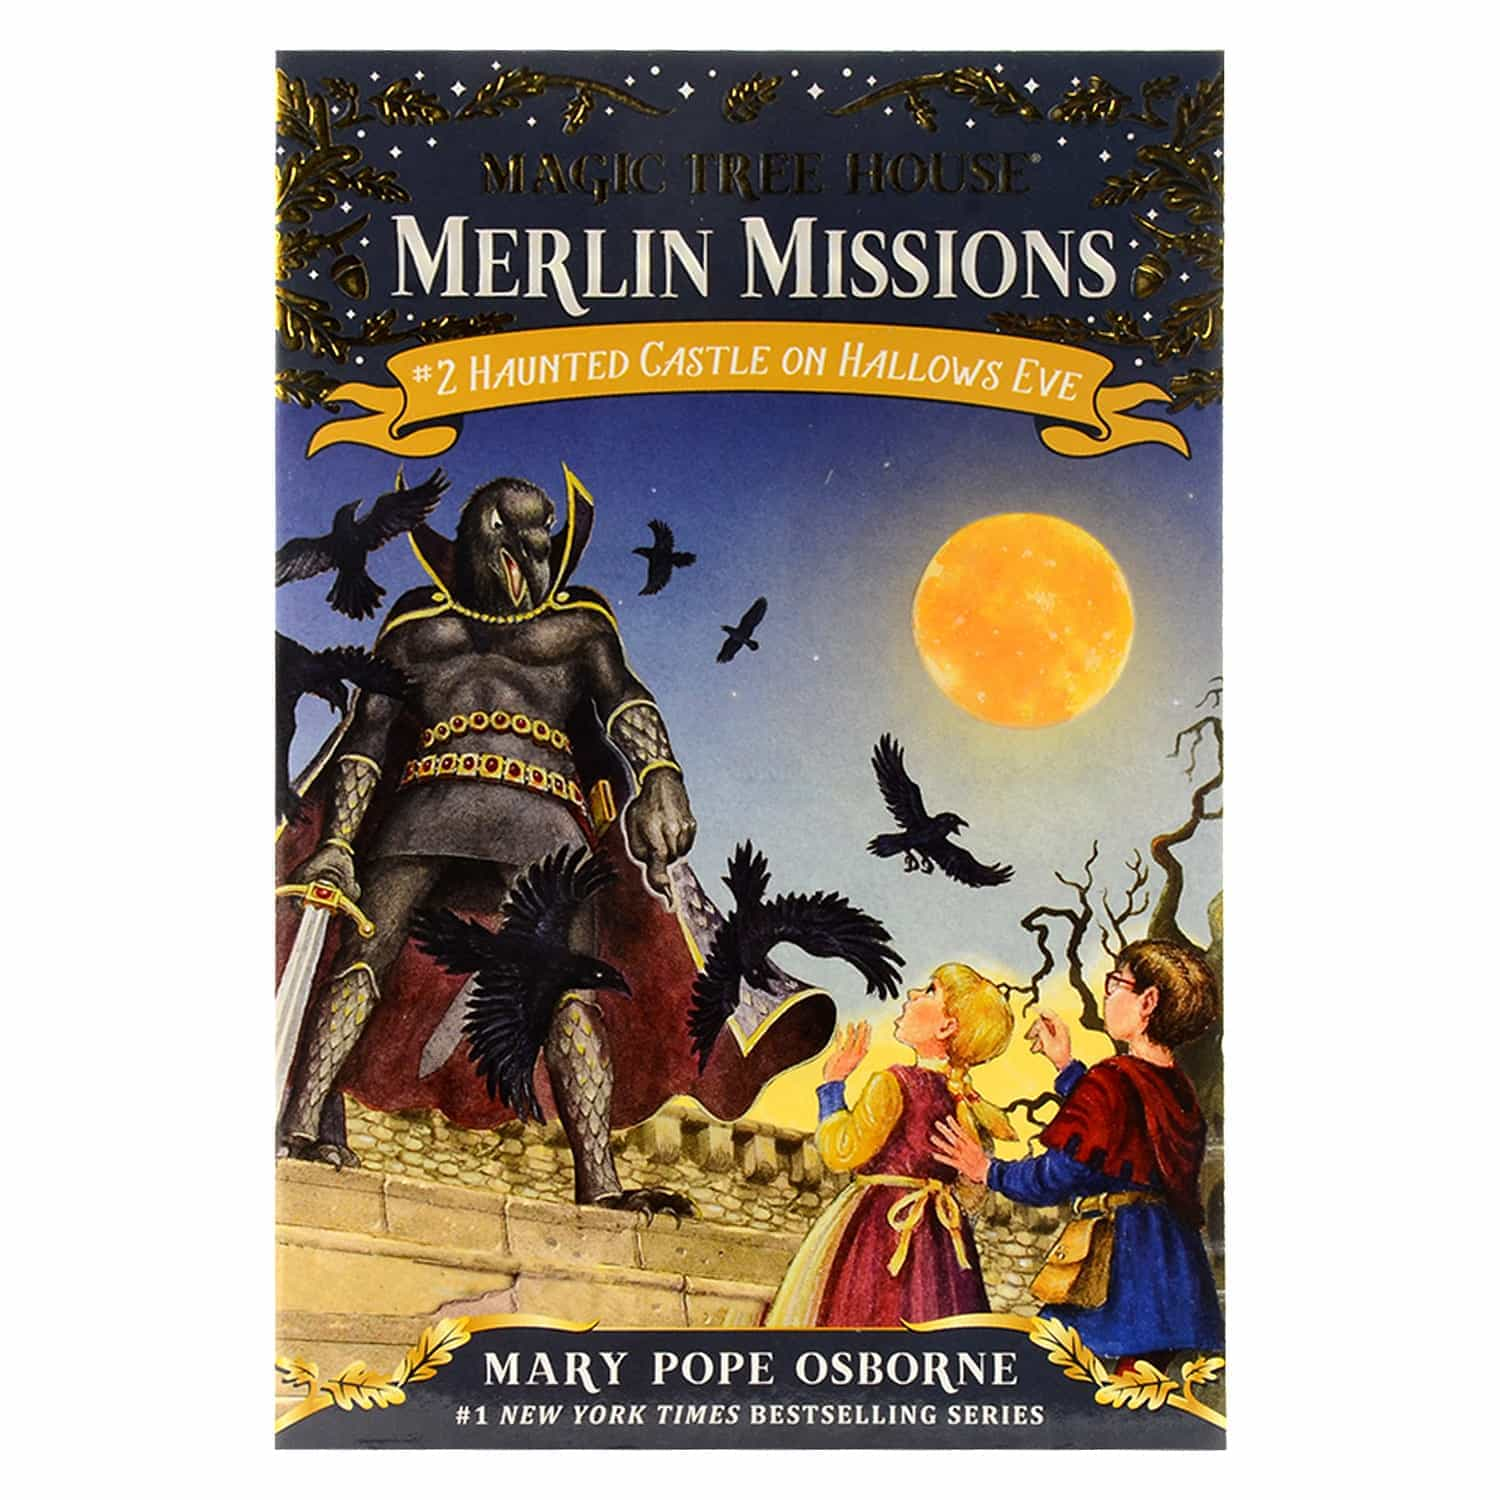 Magic Tree House Merlin Missions Series- #2 Haunted Castle on Hallows Eve